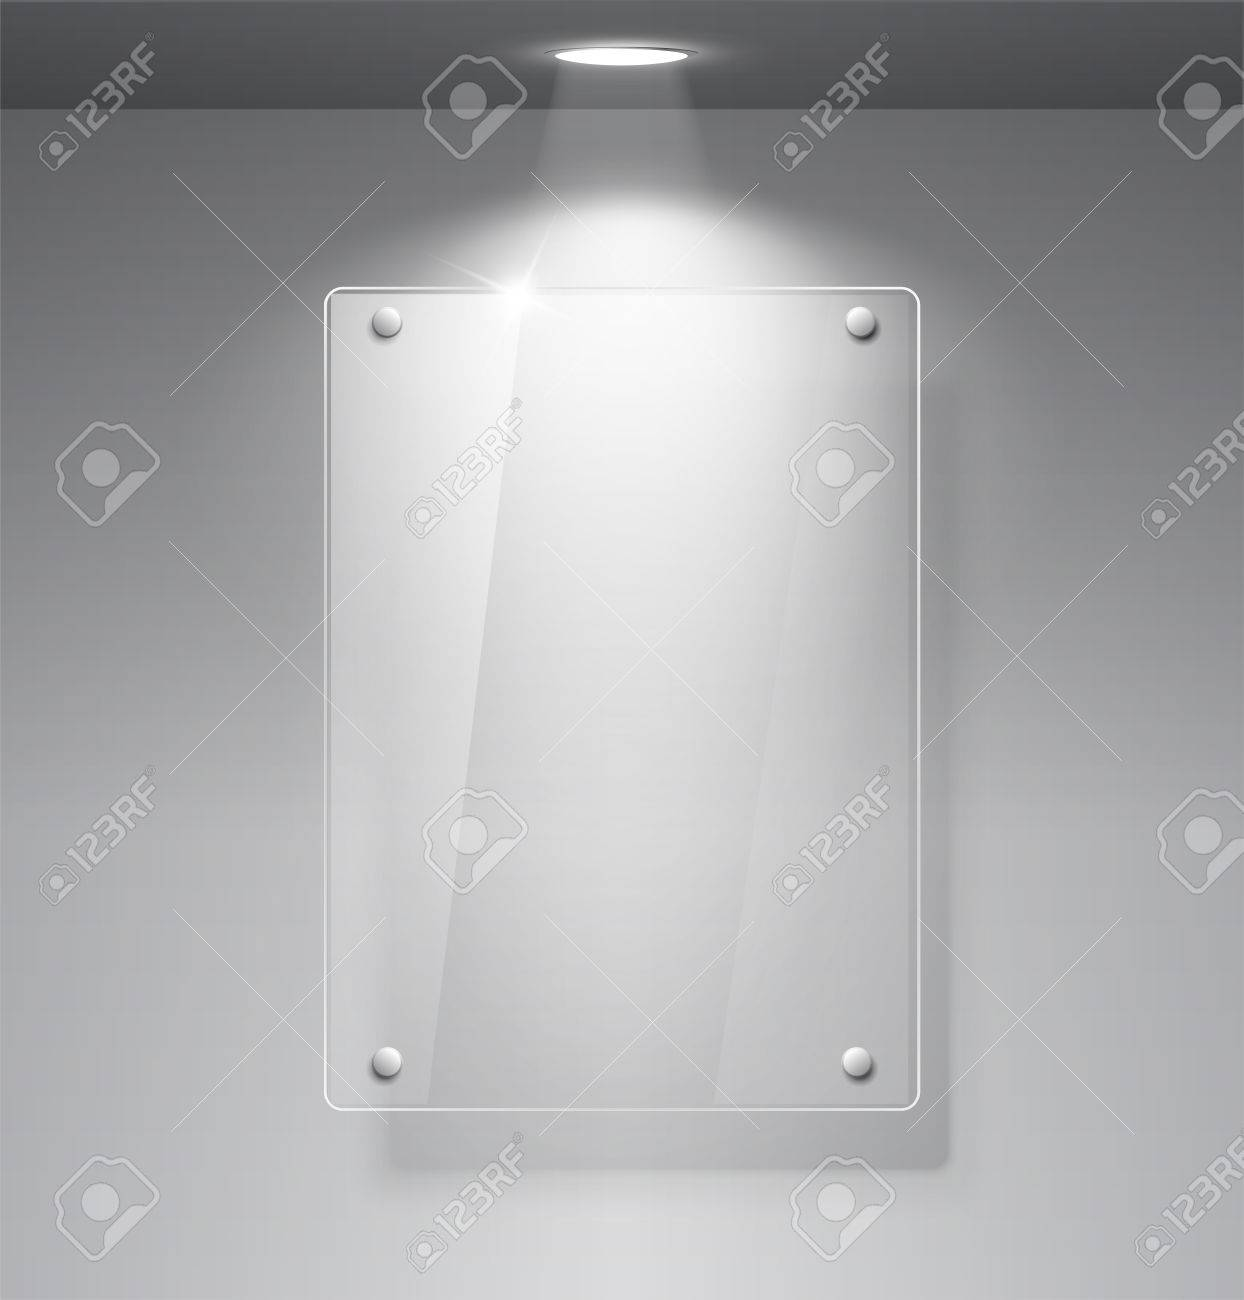 Realistic Empty Glass Frame On A Wall With Lights For Images.. Stock ...